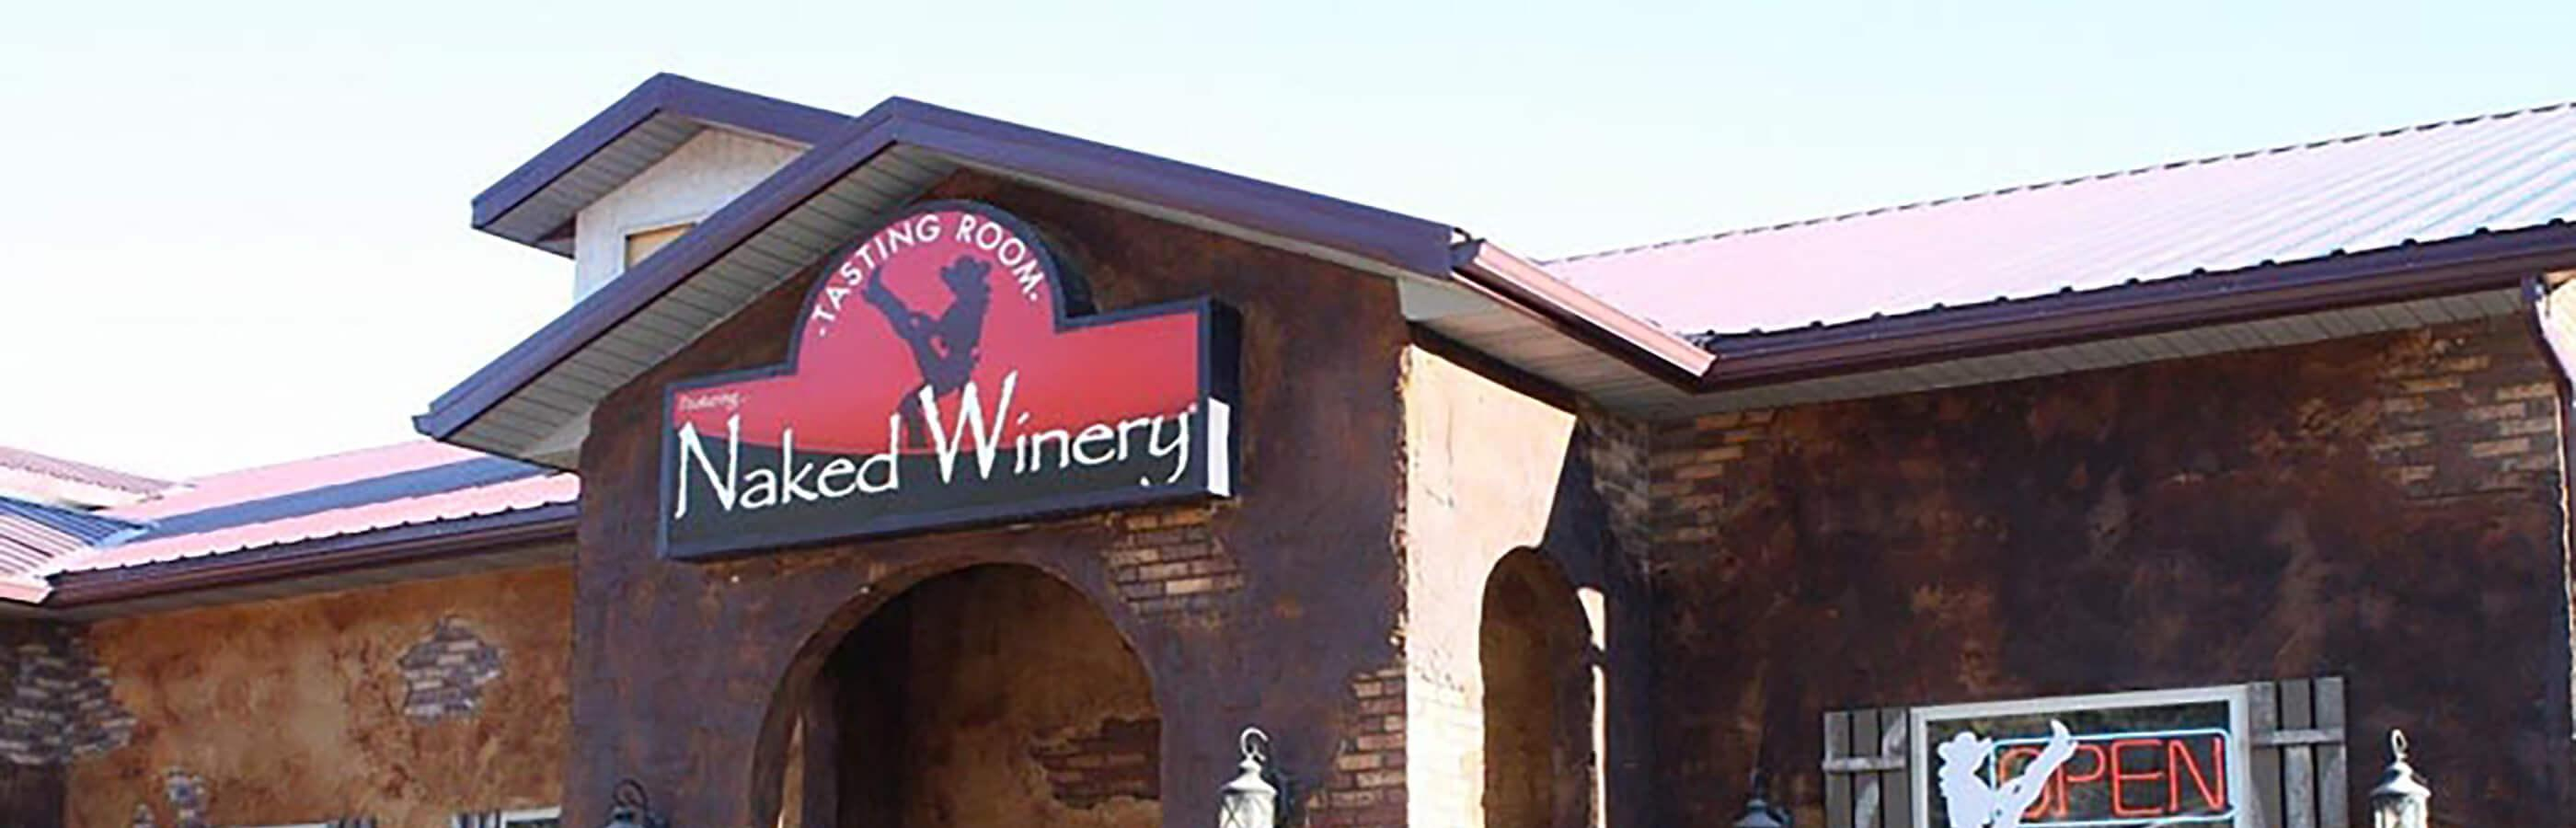 Exterior of Naked Winery In Hill City